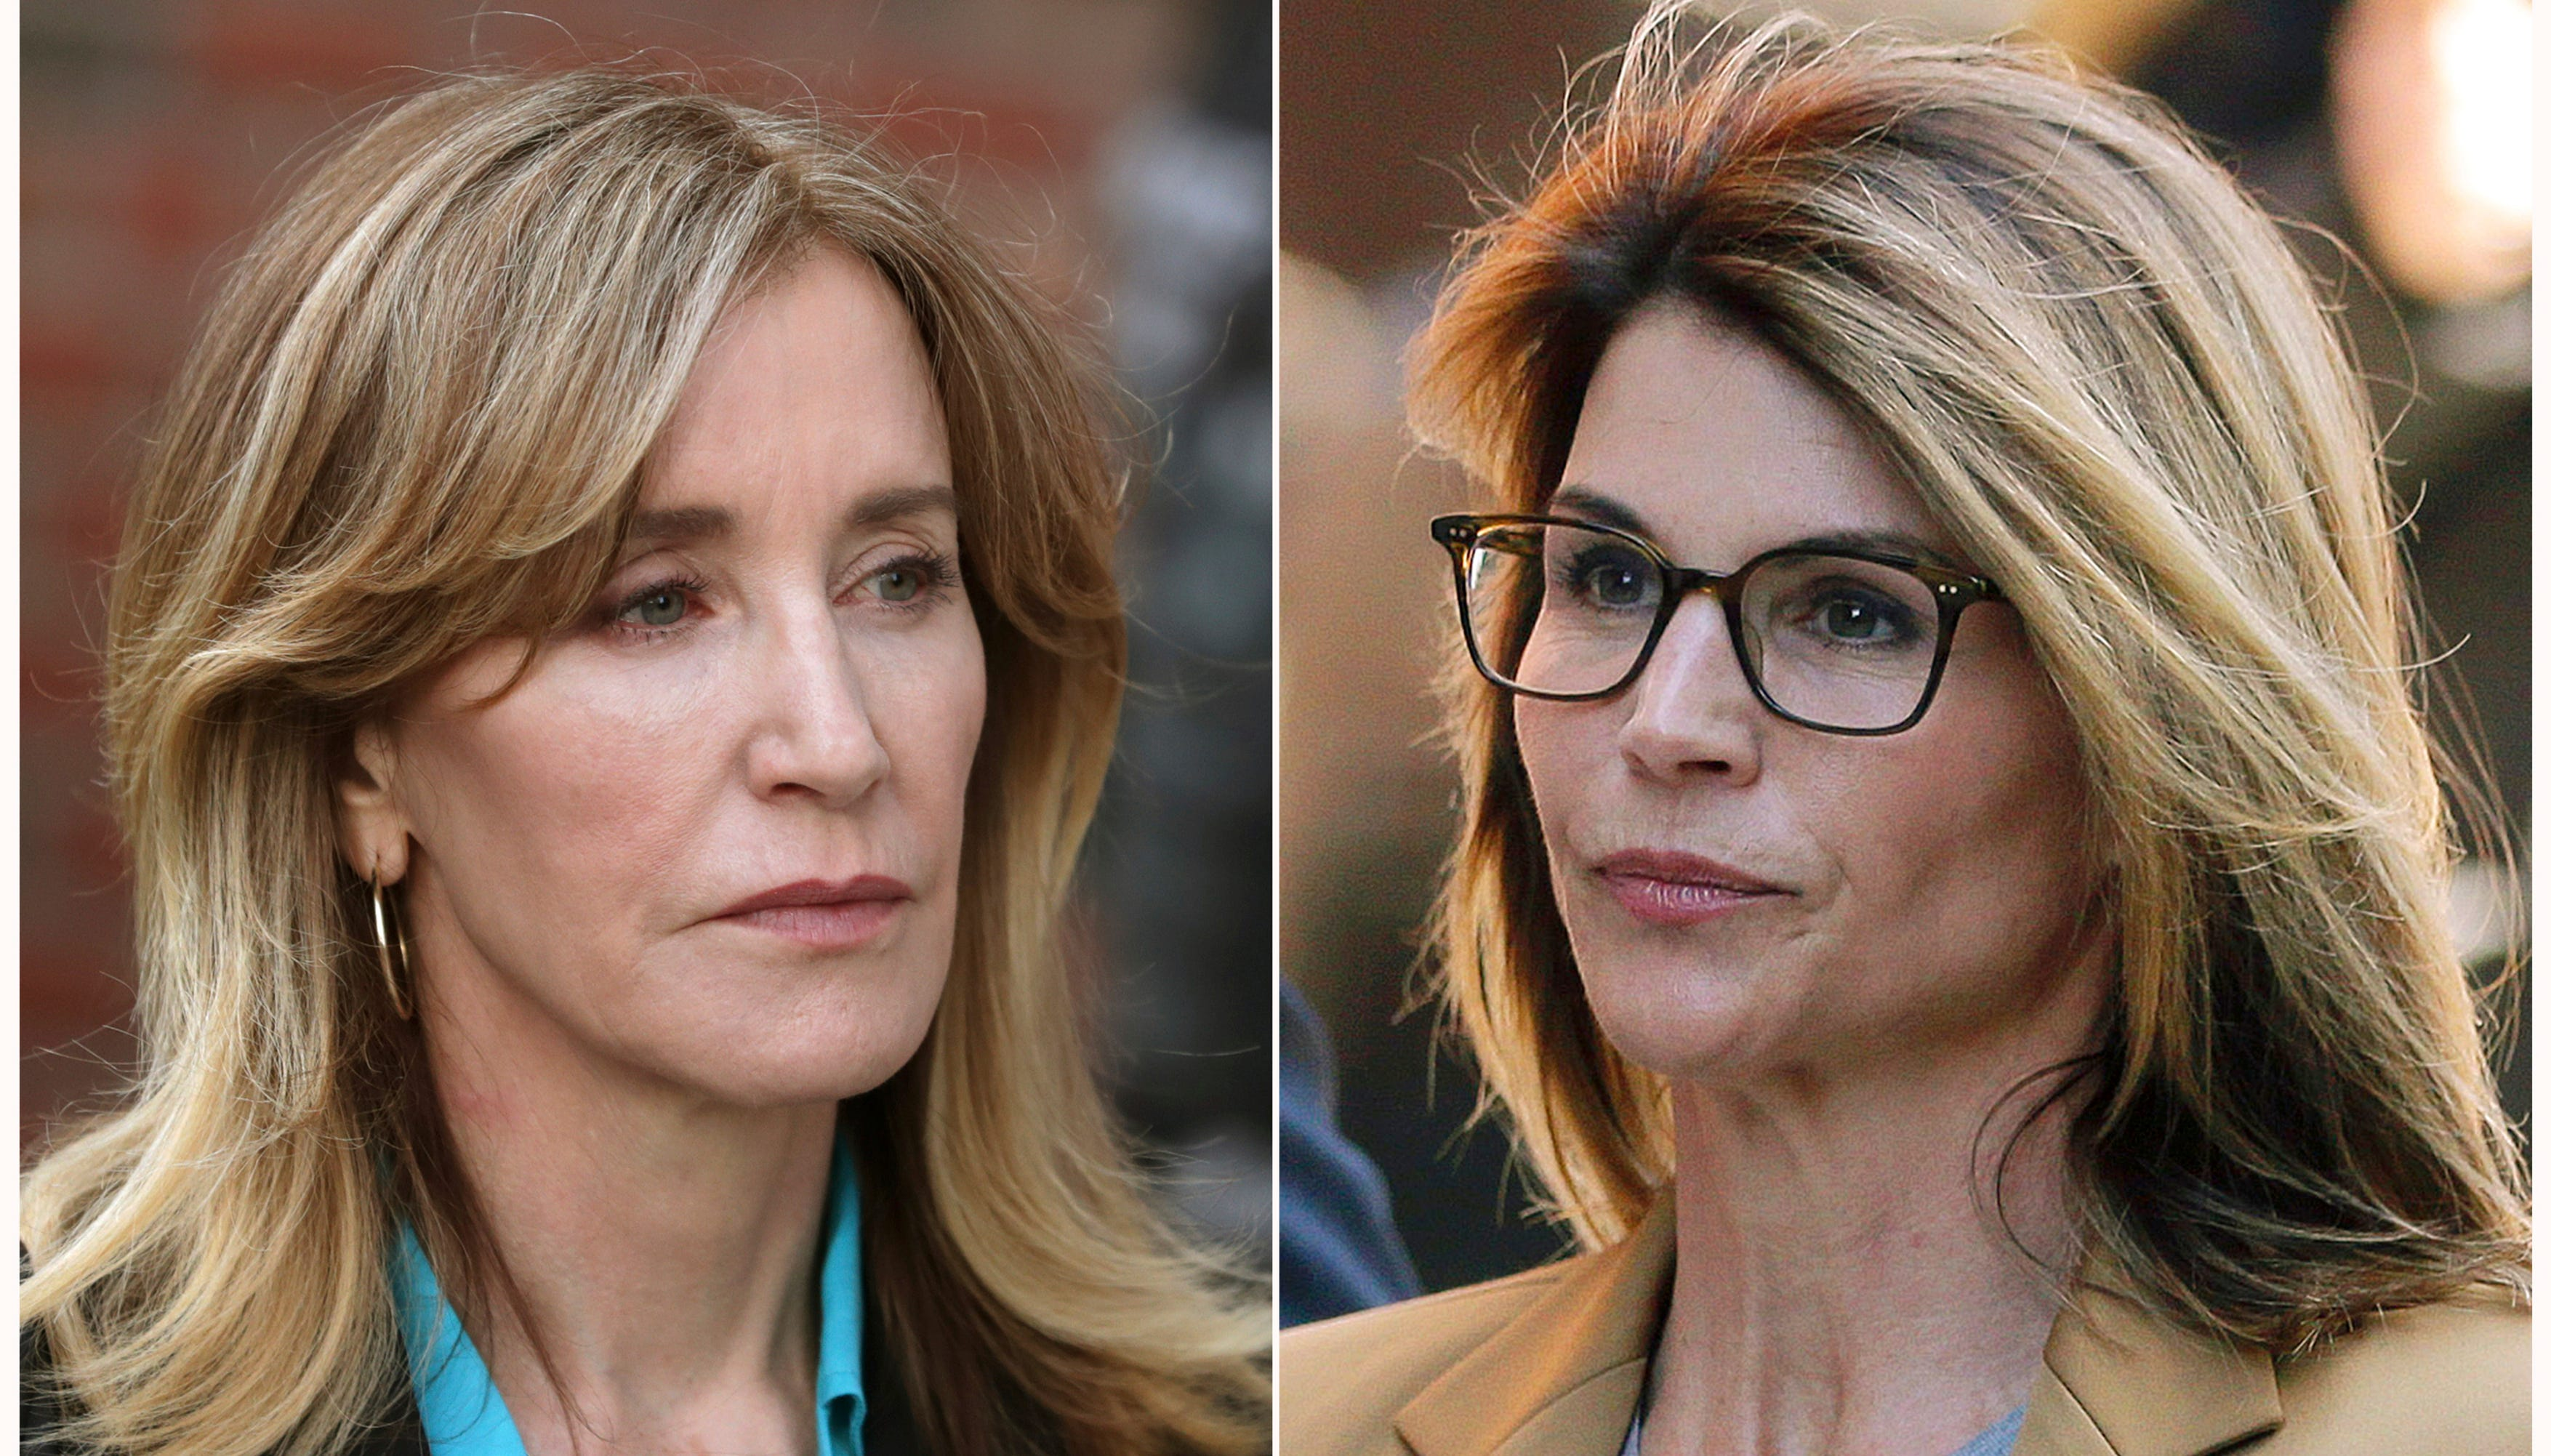 Felicity Huffman, left, and Lori Loughlin outside of federal court in Boston on April 3, where they faced charges in a nationwide college admissions bribery scandal.